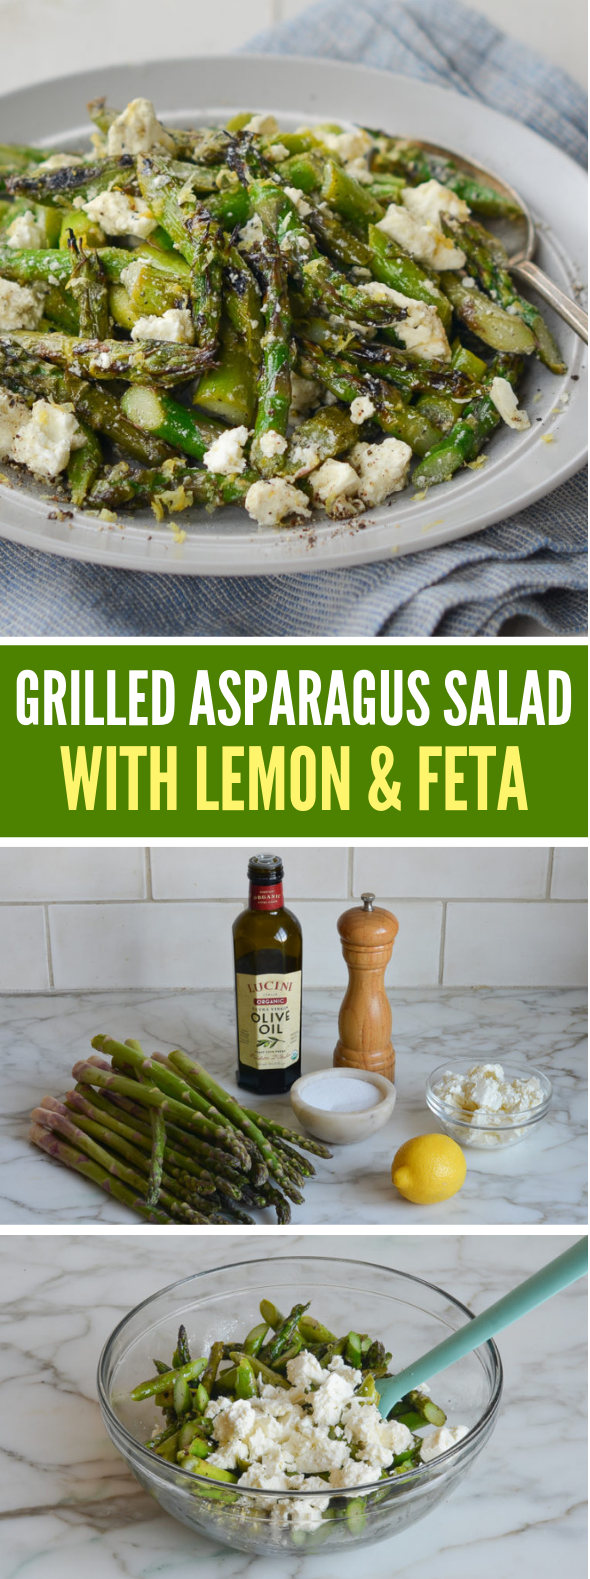 Grilled Asparagus Salad with Lemon & Feta #vegetarian #glutenfree #salad #veggies #vegetables